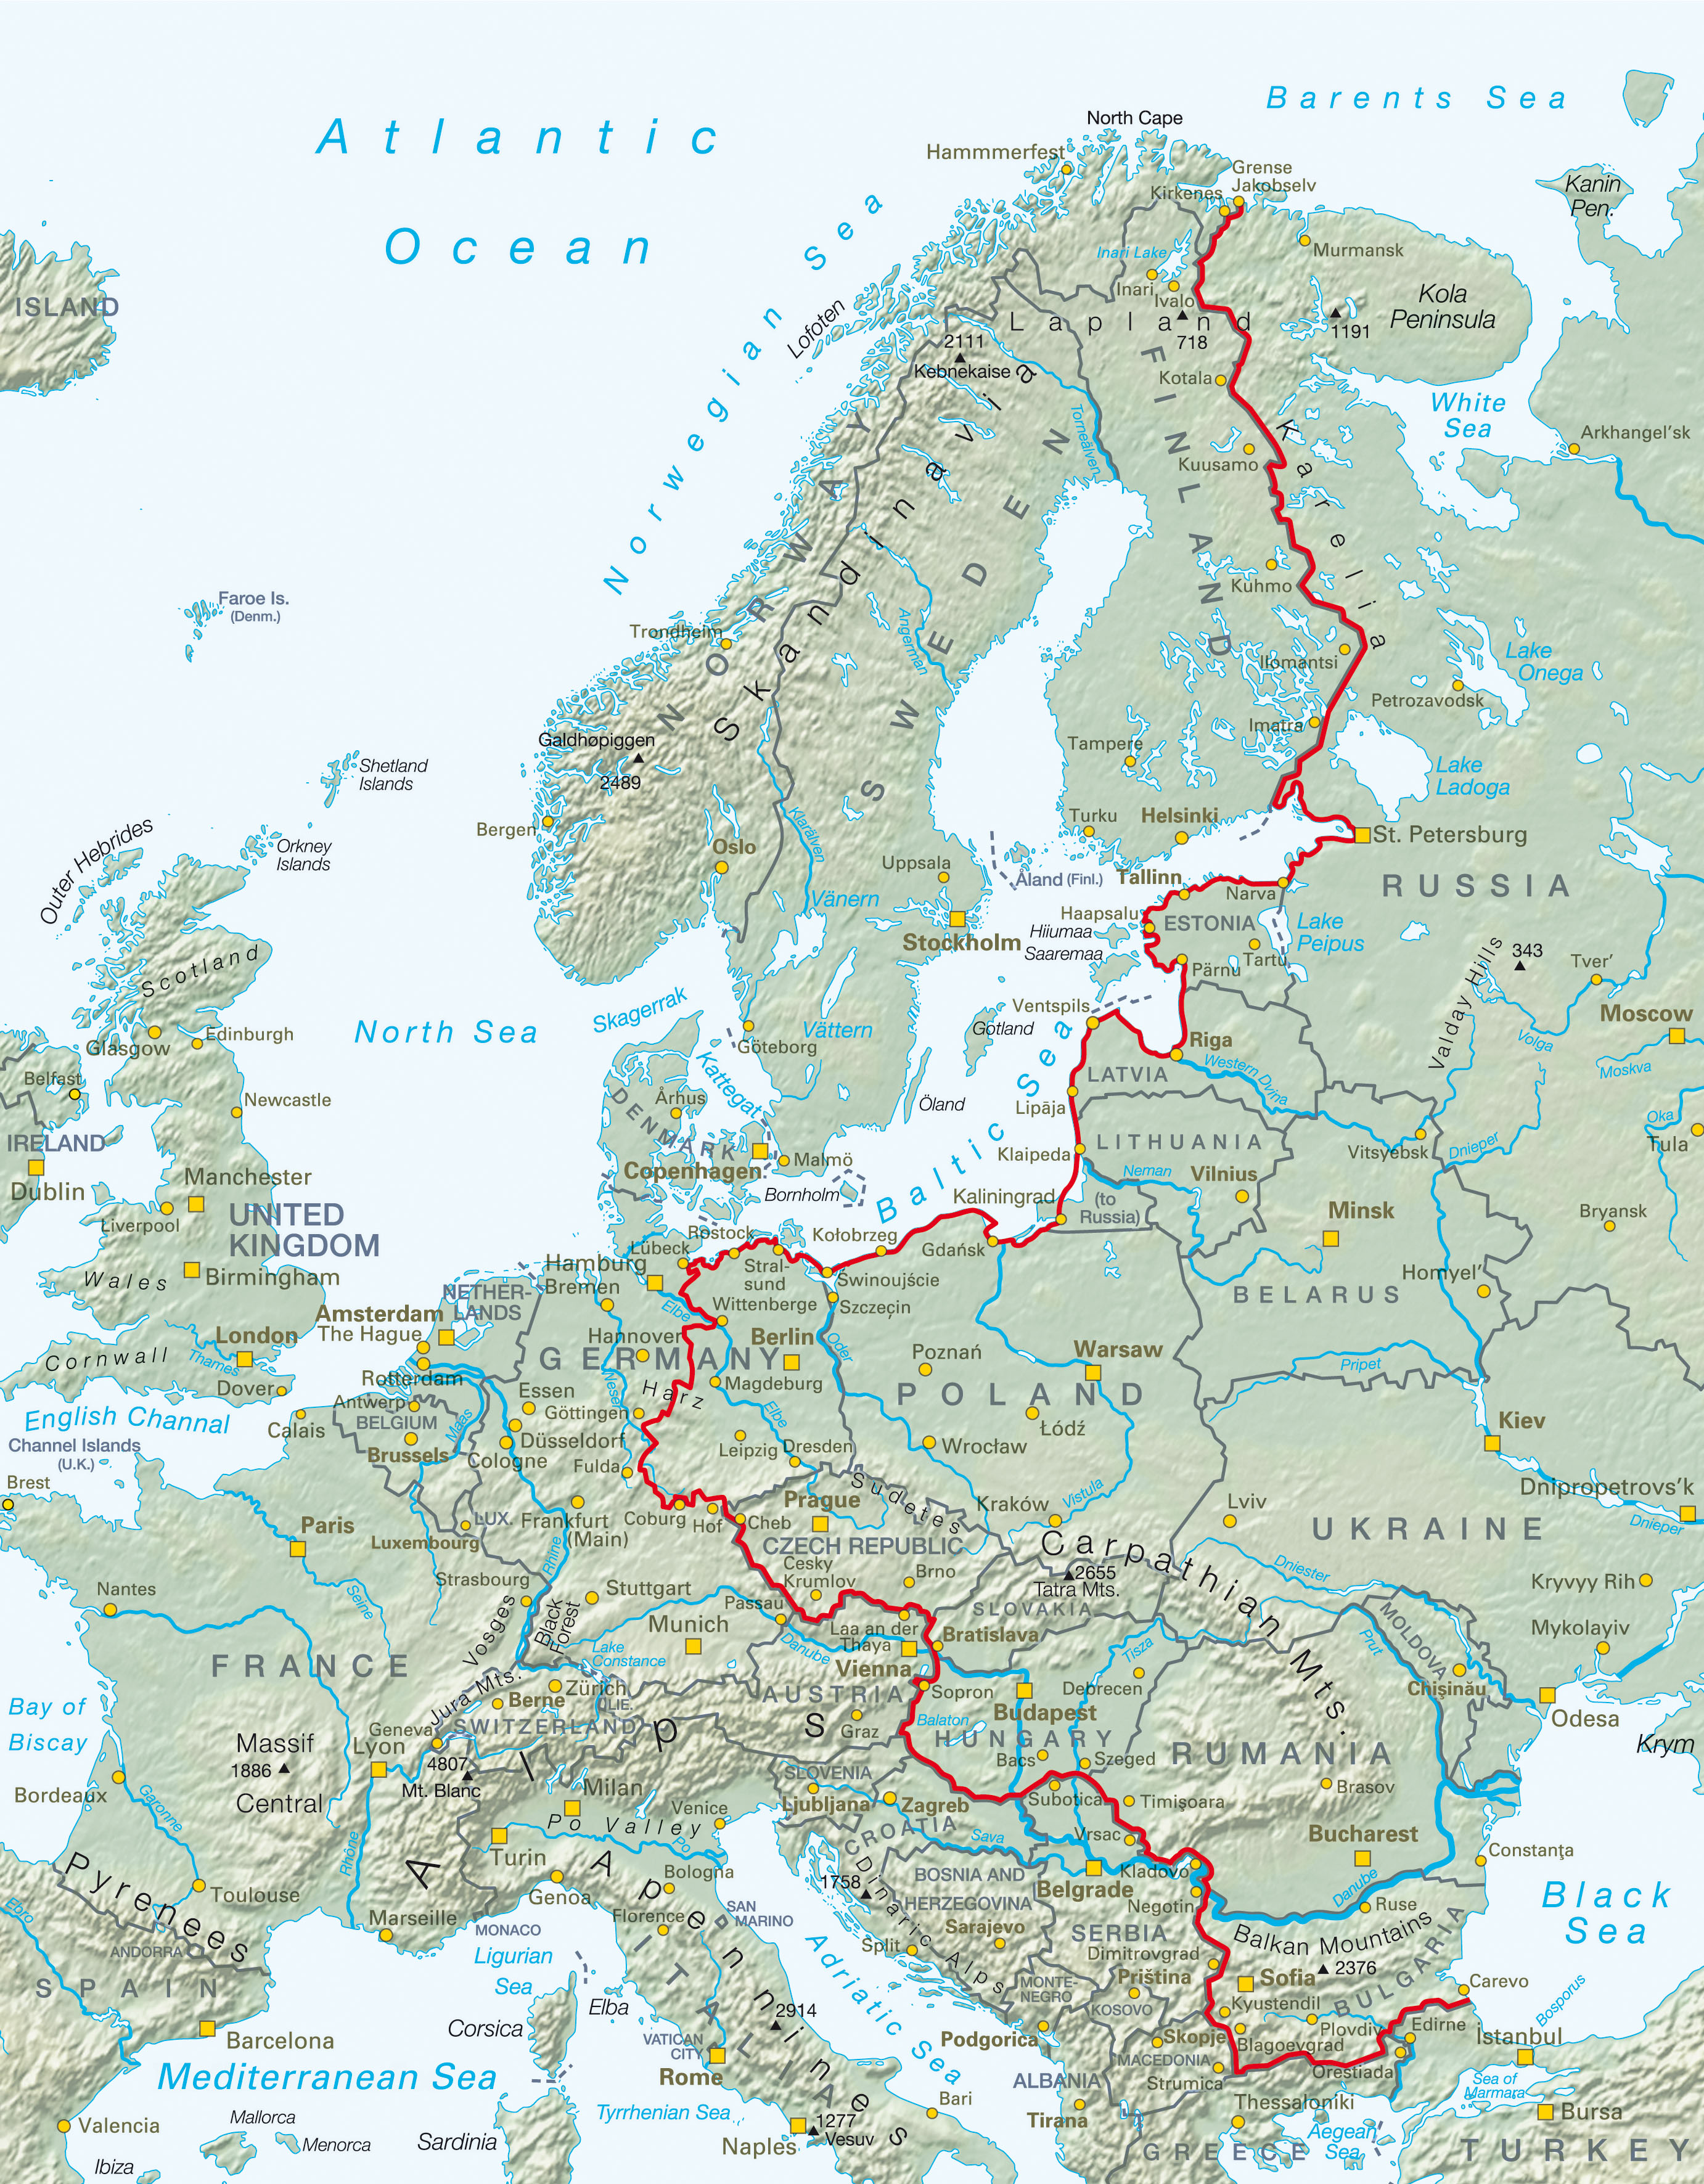 Iron Curtain Map A Cycling Lane Replaces The Iron Curtain That Divided Europe